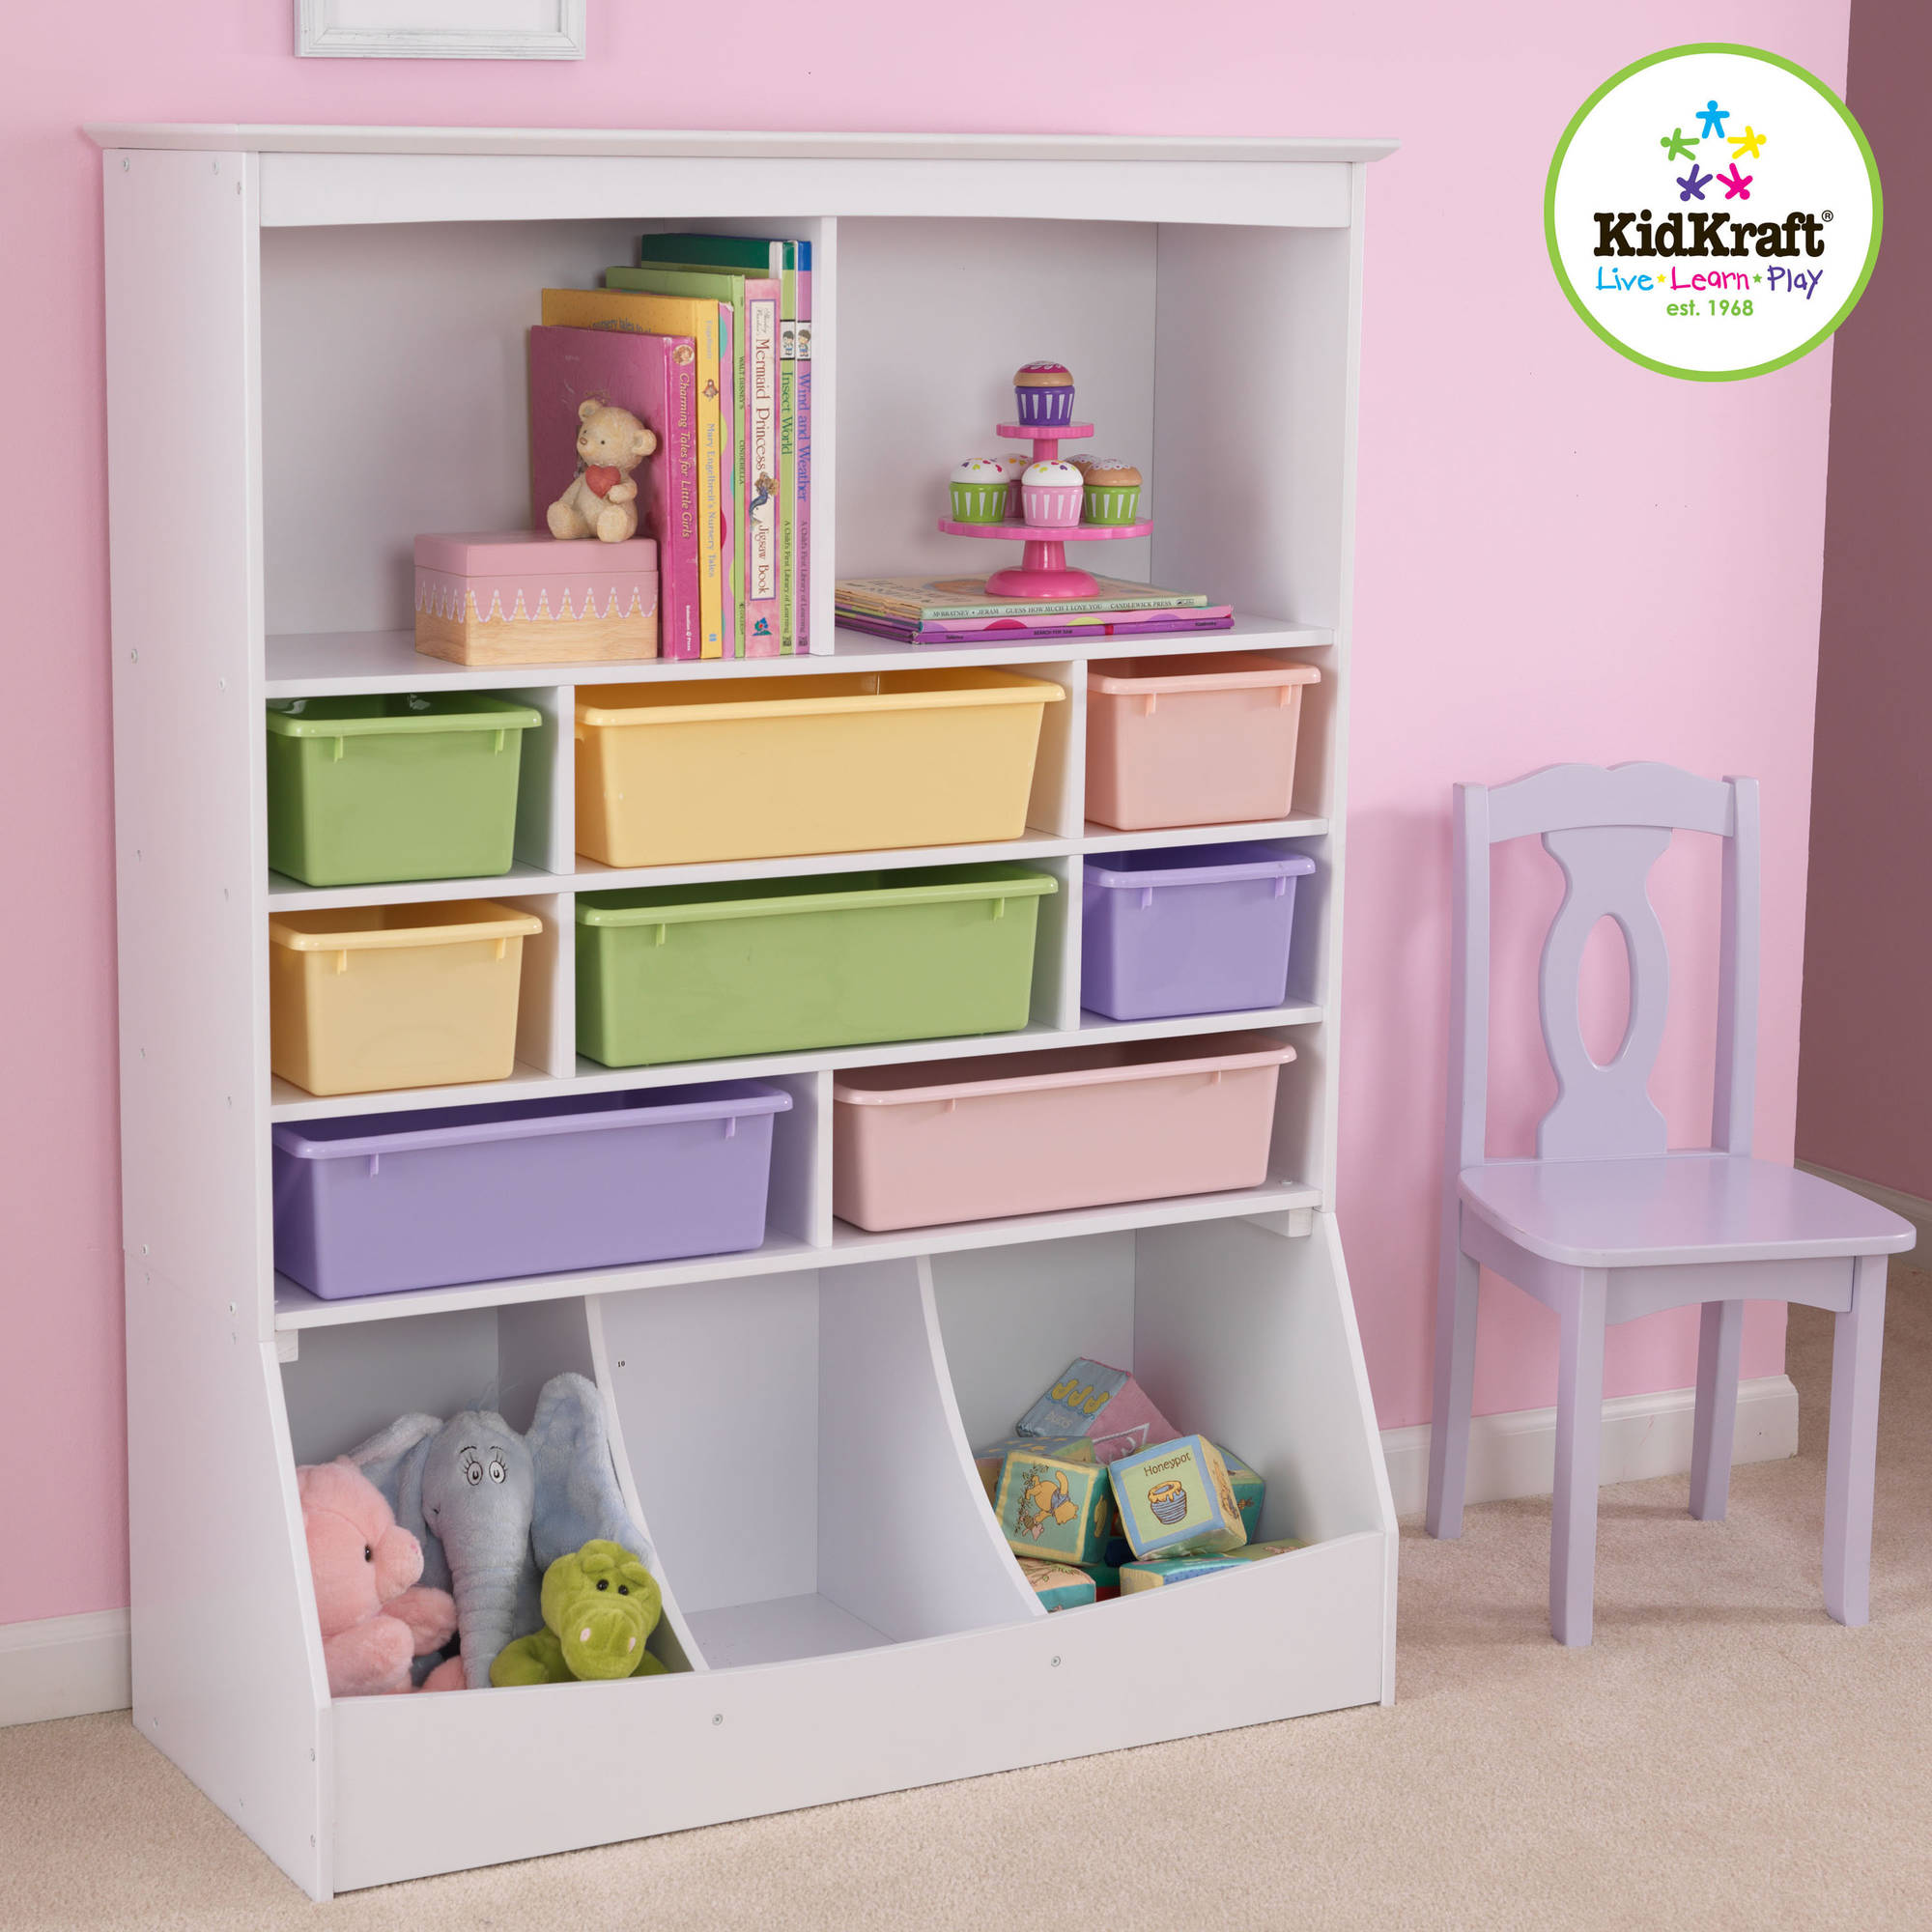 Kidkraft Wall Storage Unit, Multiple Colors